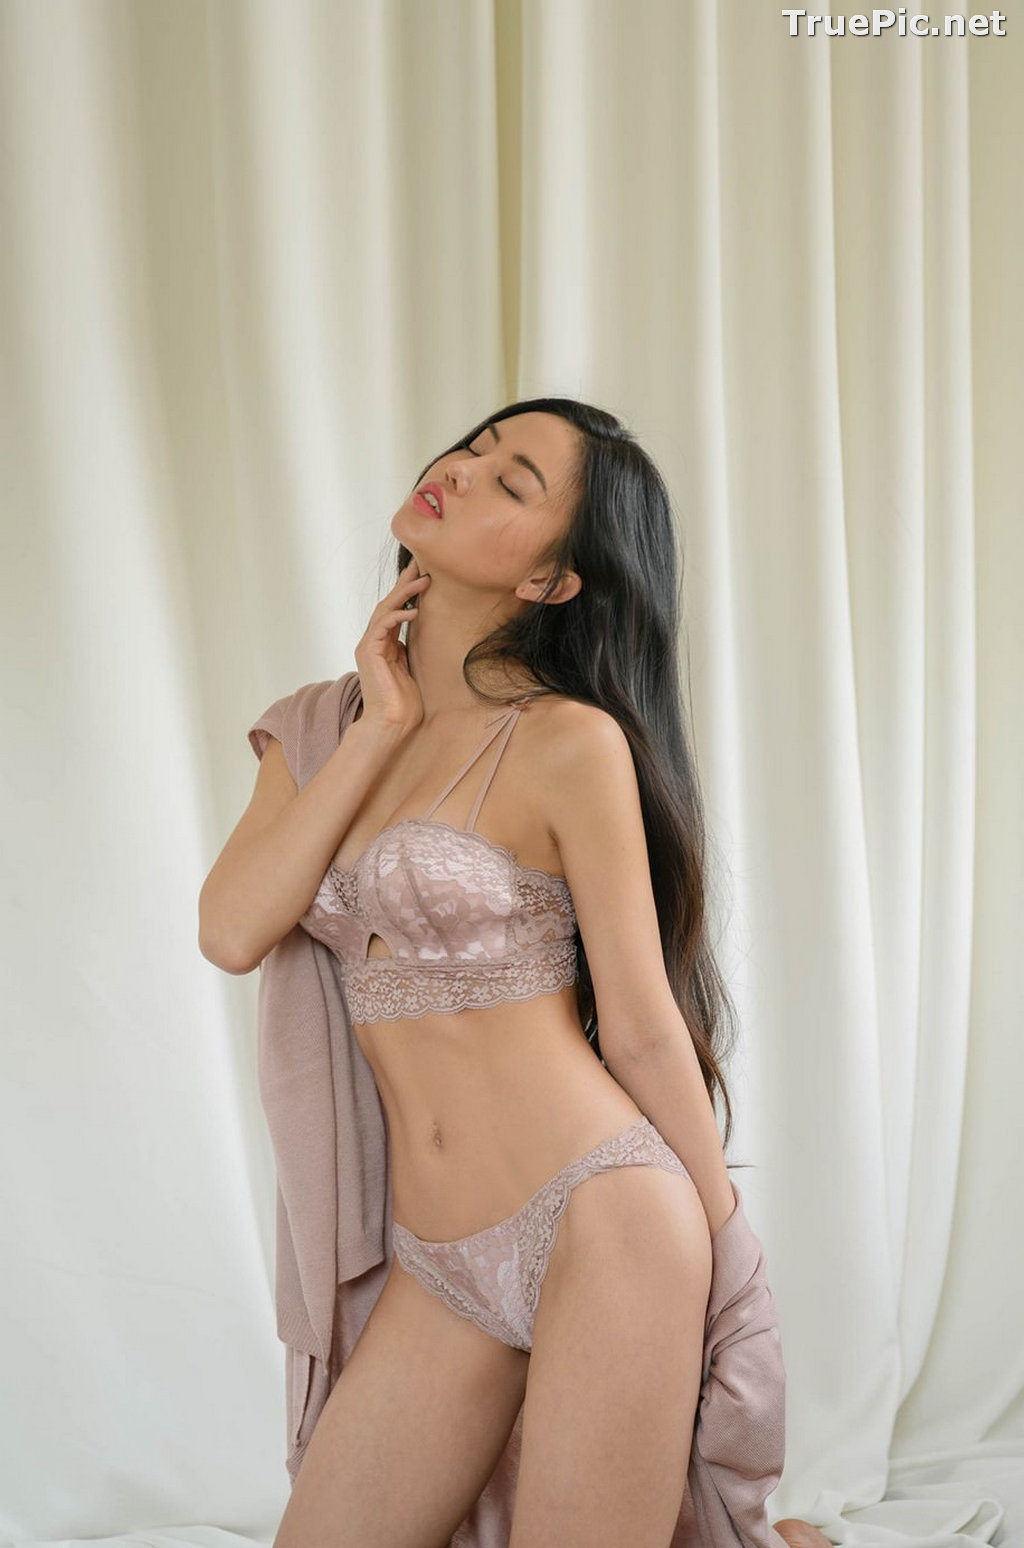 Image Korean Fashion Model – Baek Ye Jin – Sexy Lingerie Collection #8 - TruePic.net - Picture-6